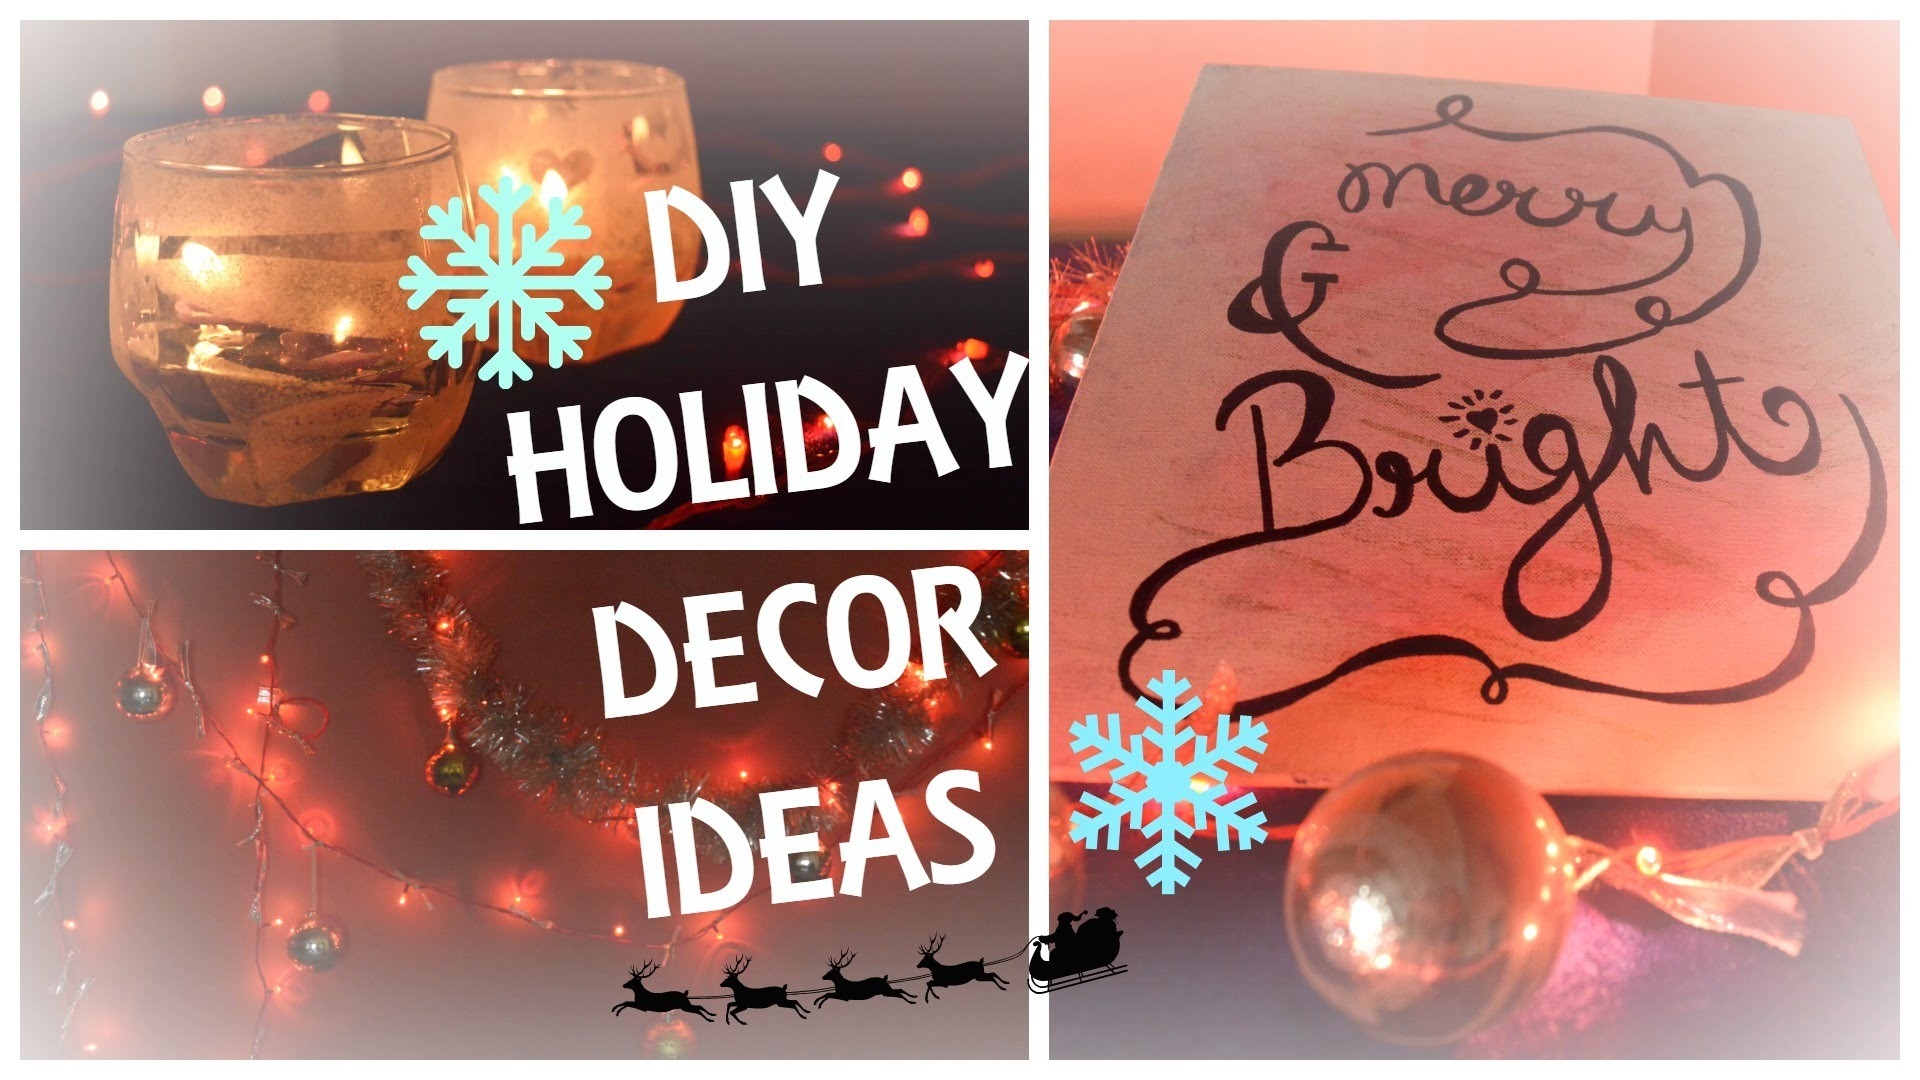 DIY New Year Decor Ideas | Last Minute Decorations | Neesome DIY